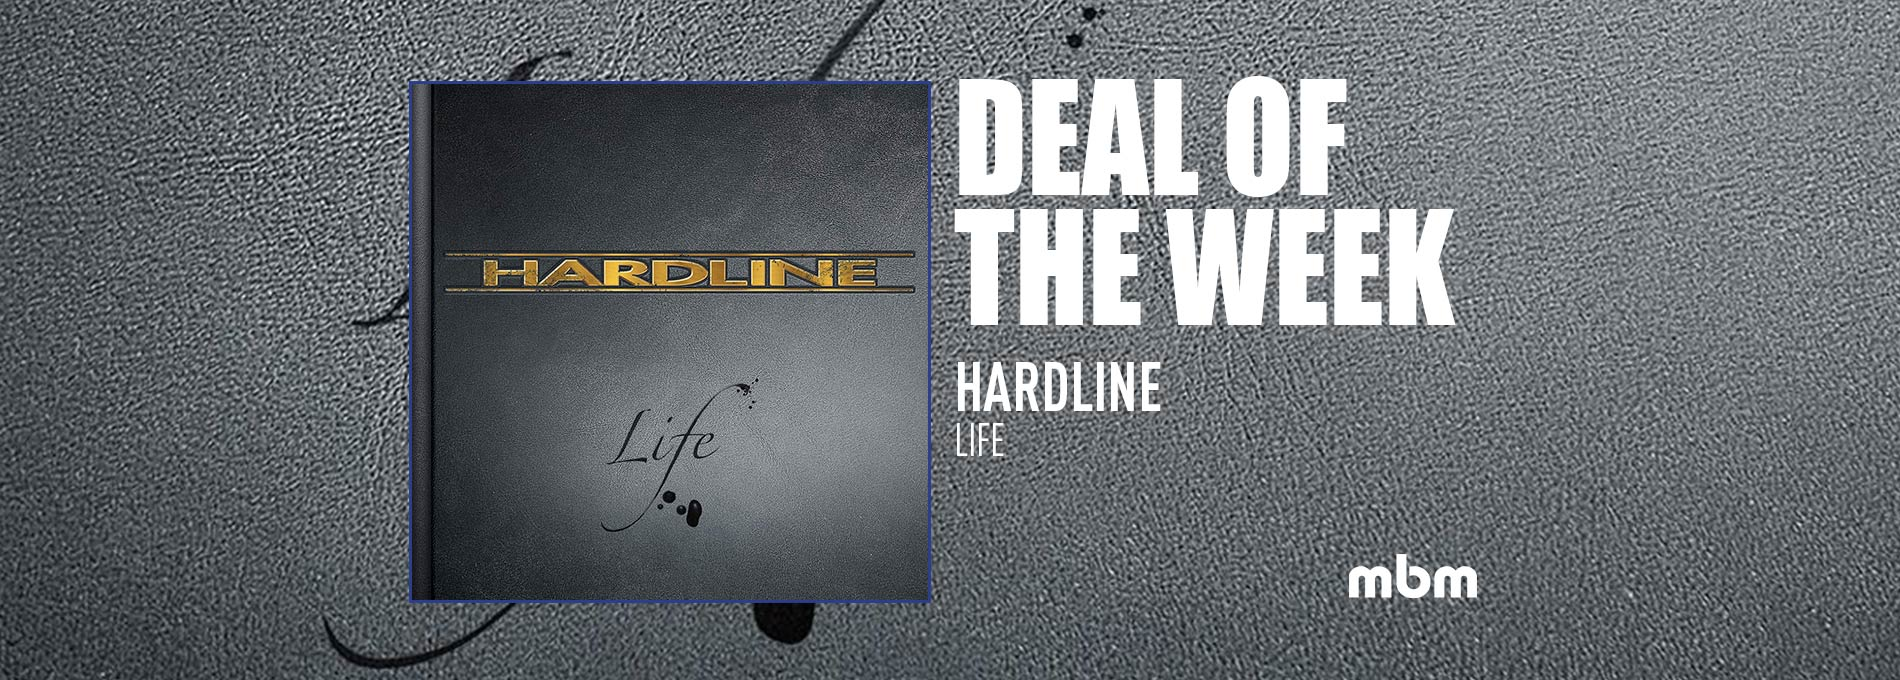 Deal Of The Week: HARDLINE - Life